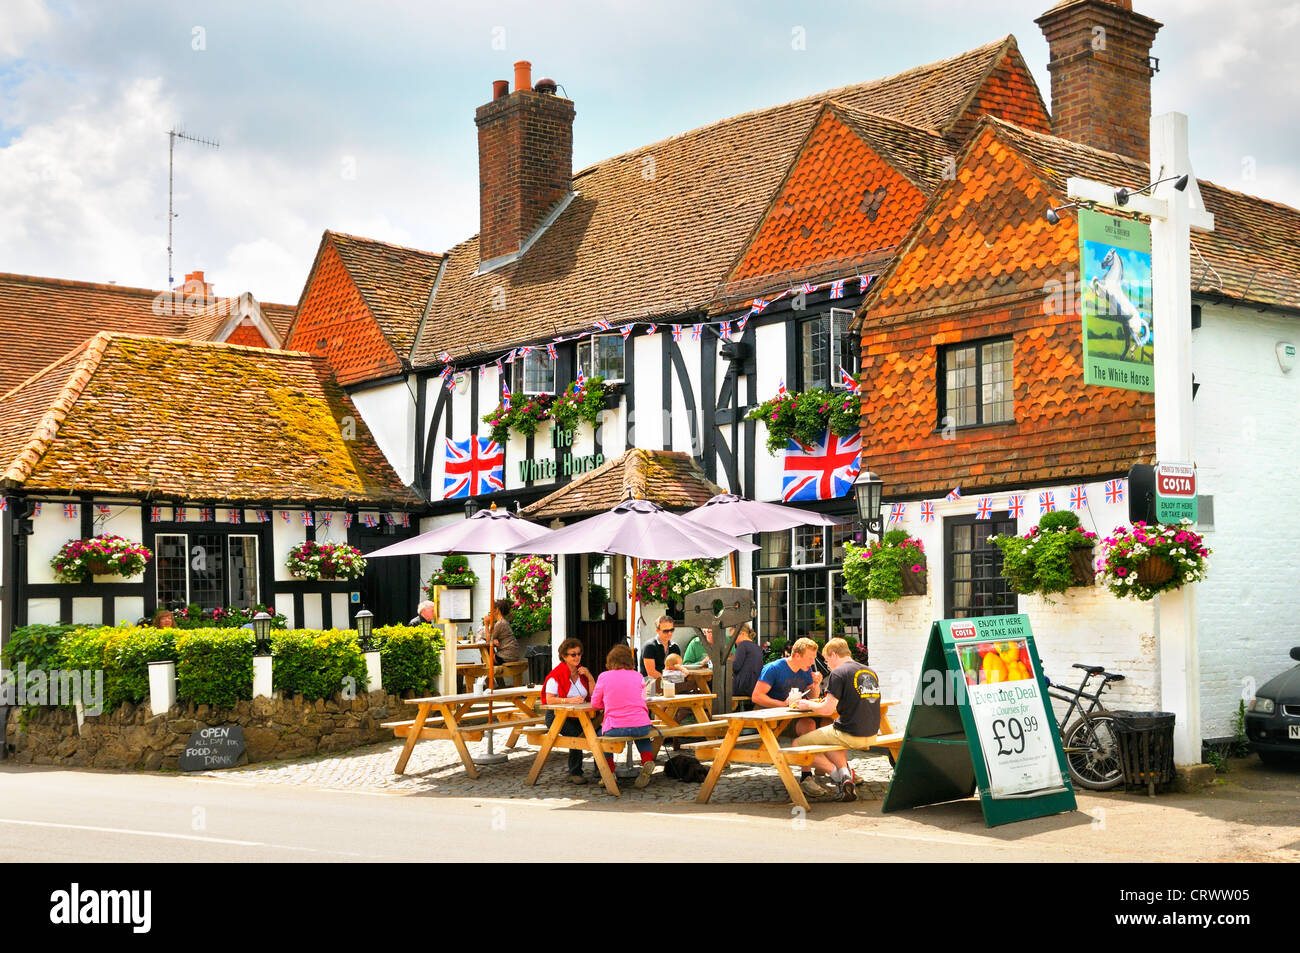 The White Horse Inn, Shere, Surrey, UK - Stock Image